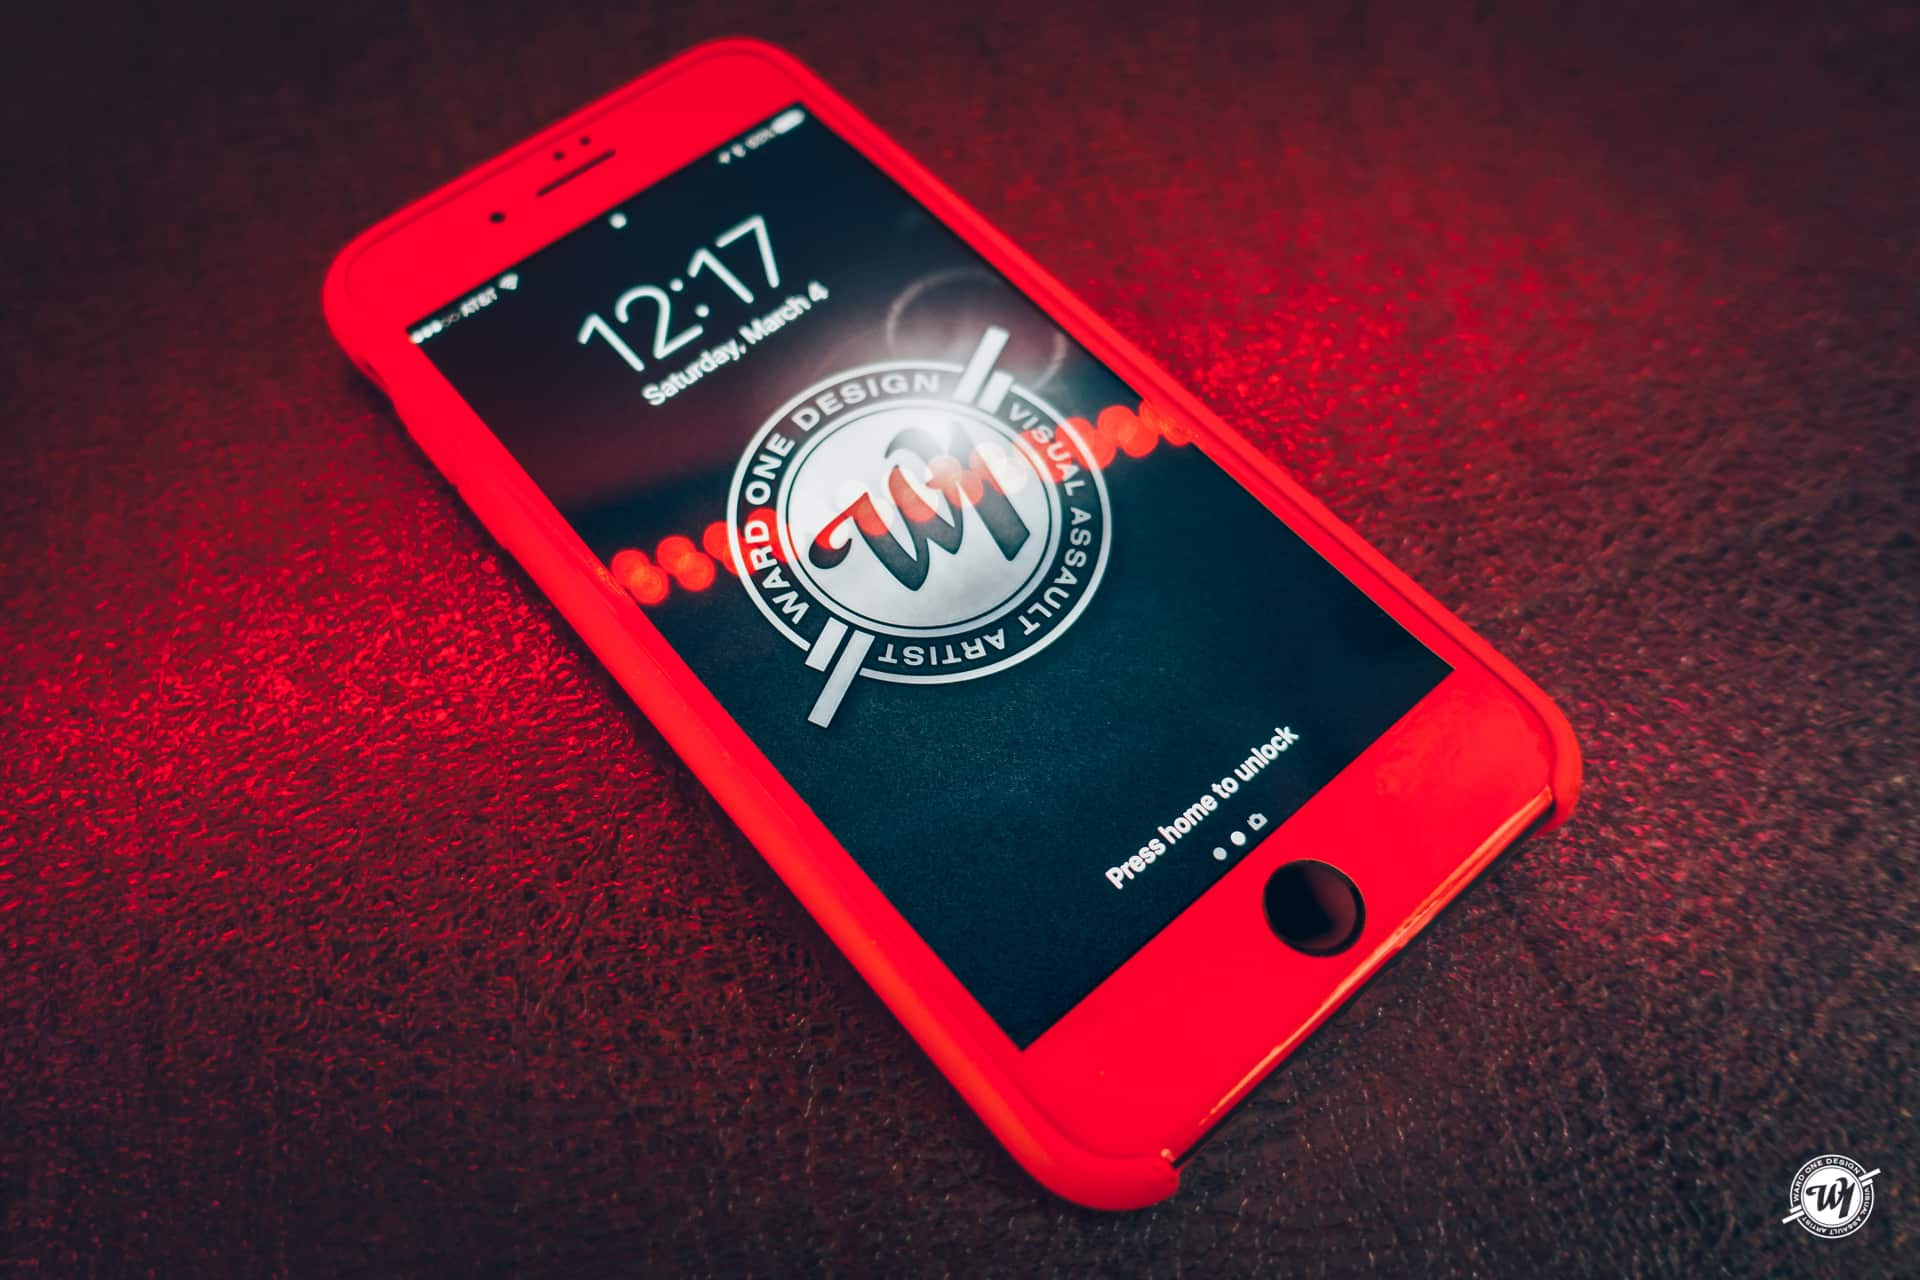 All Red iPhone 7 Plus Ward 1 Design